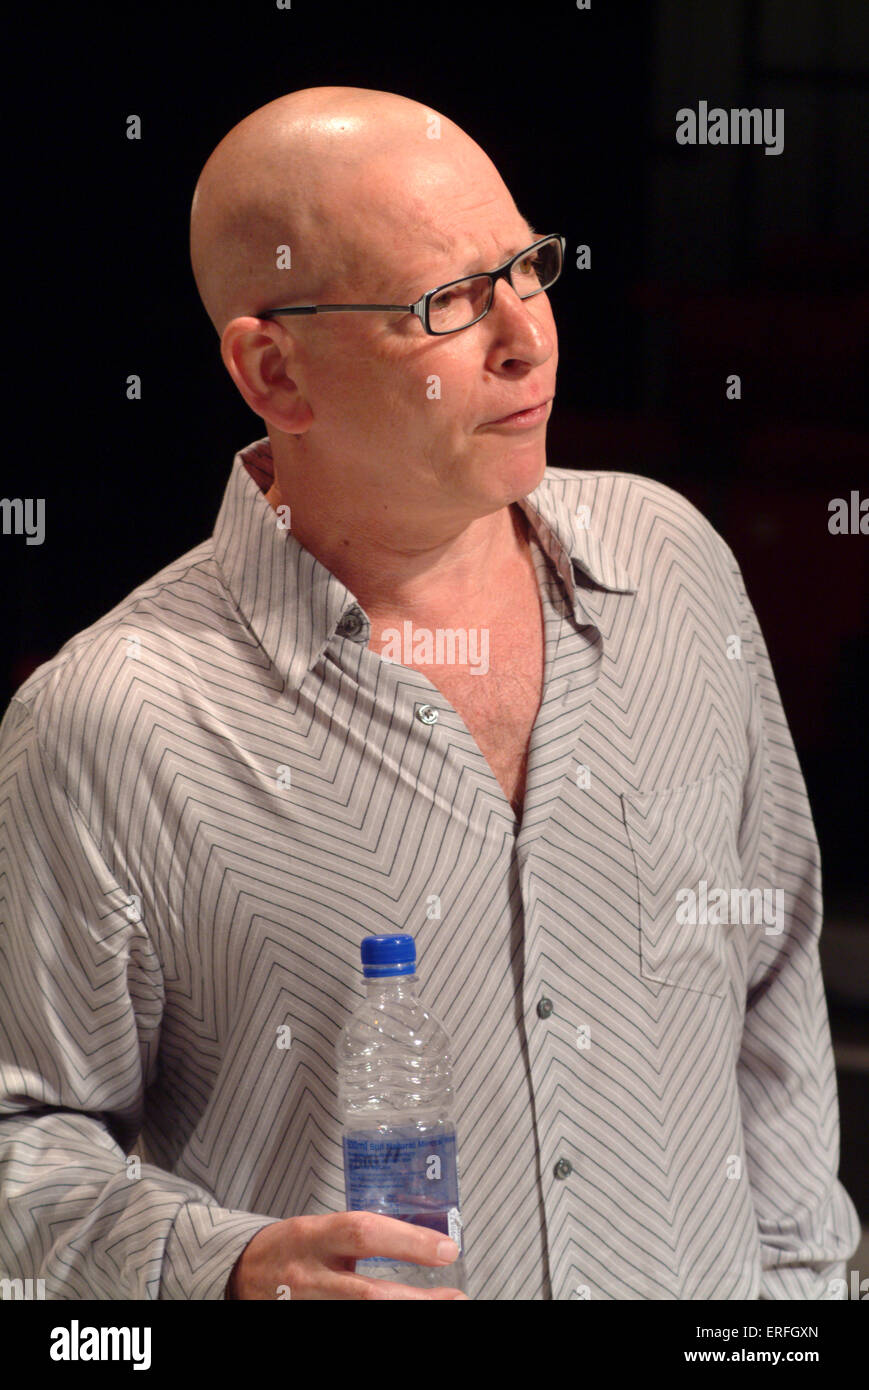 Six Pictures of Lee Miller - director Anthony van Laast on stage of